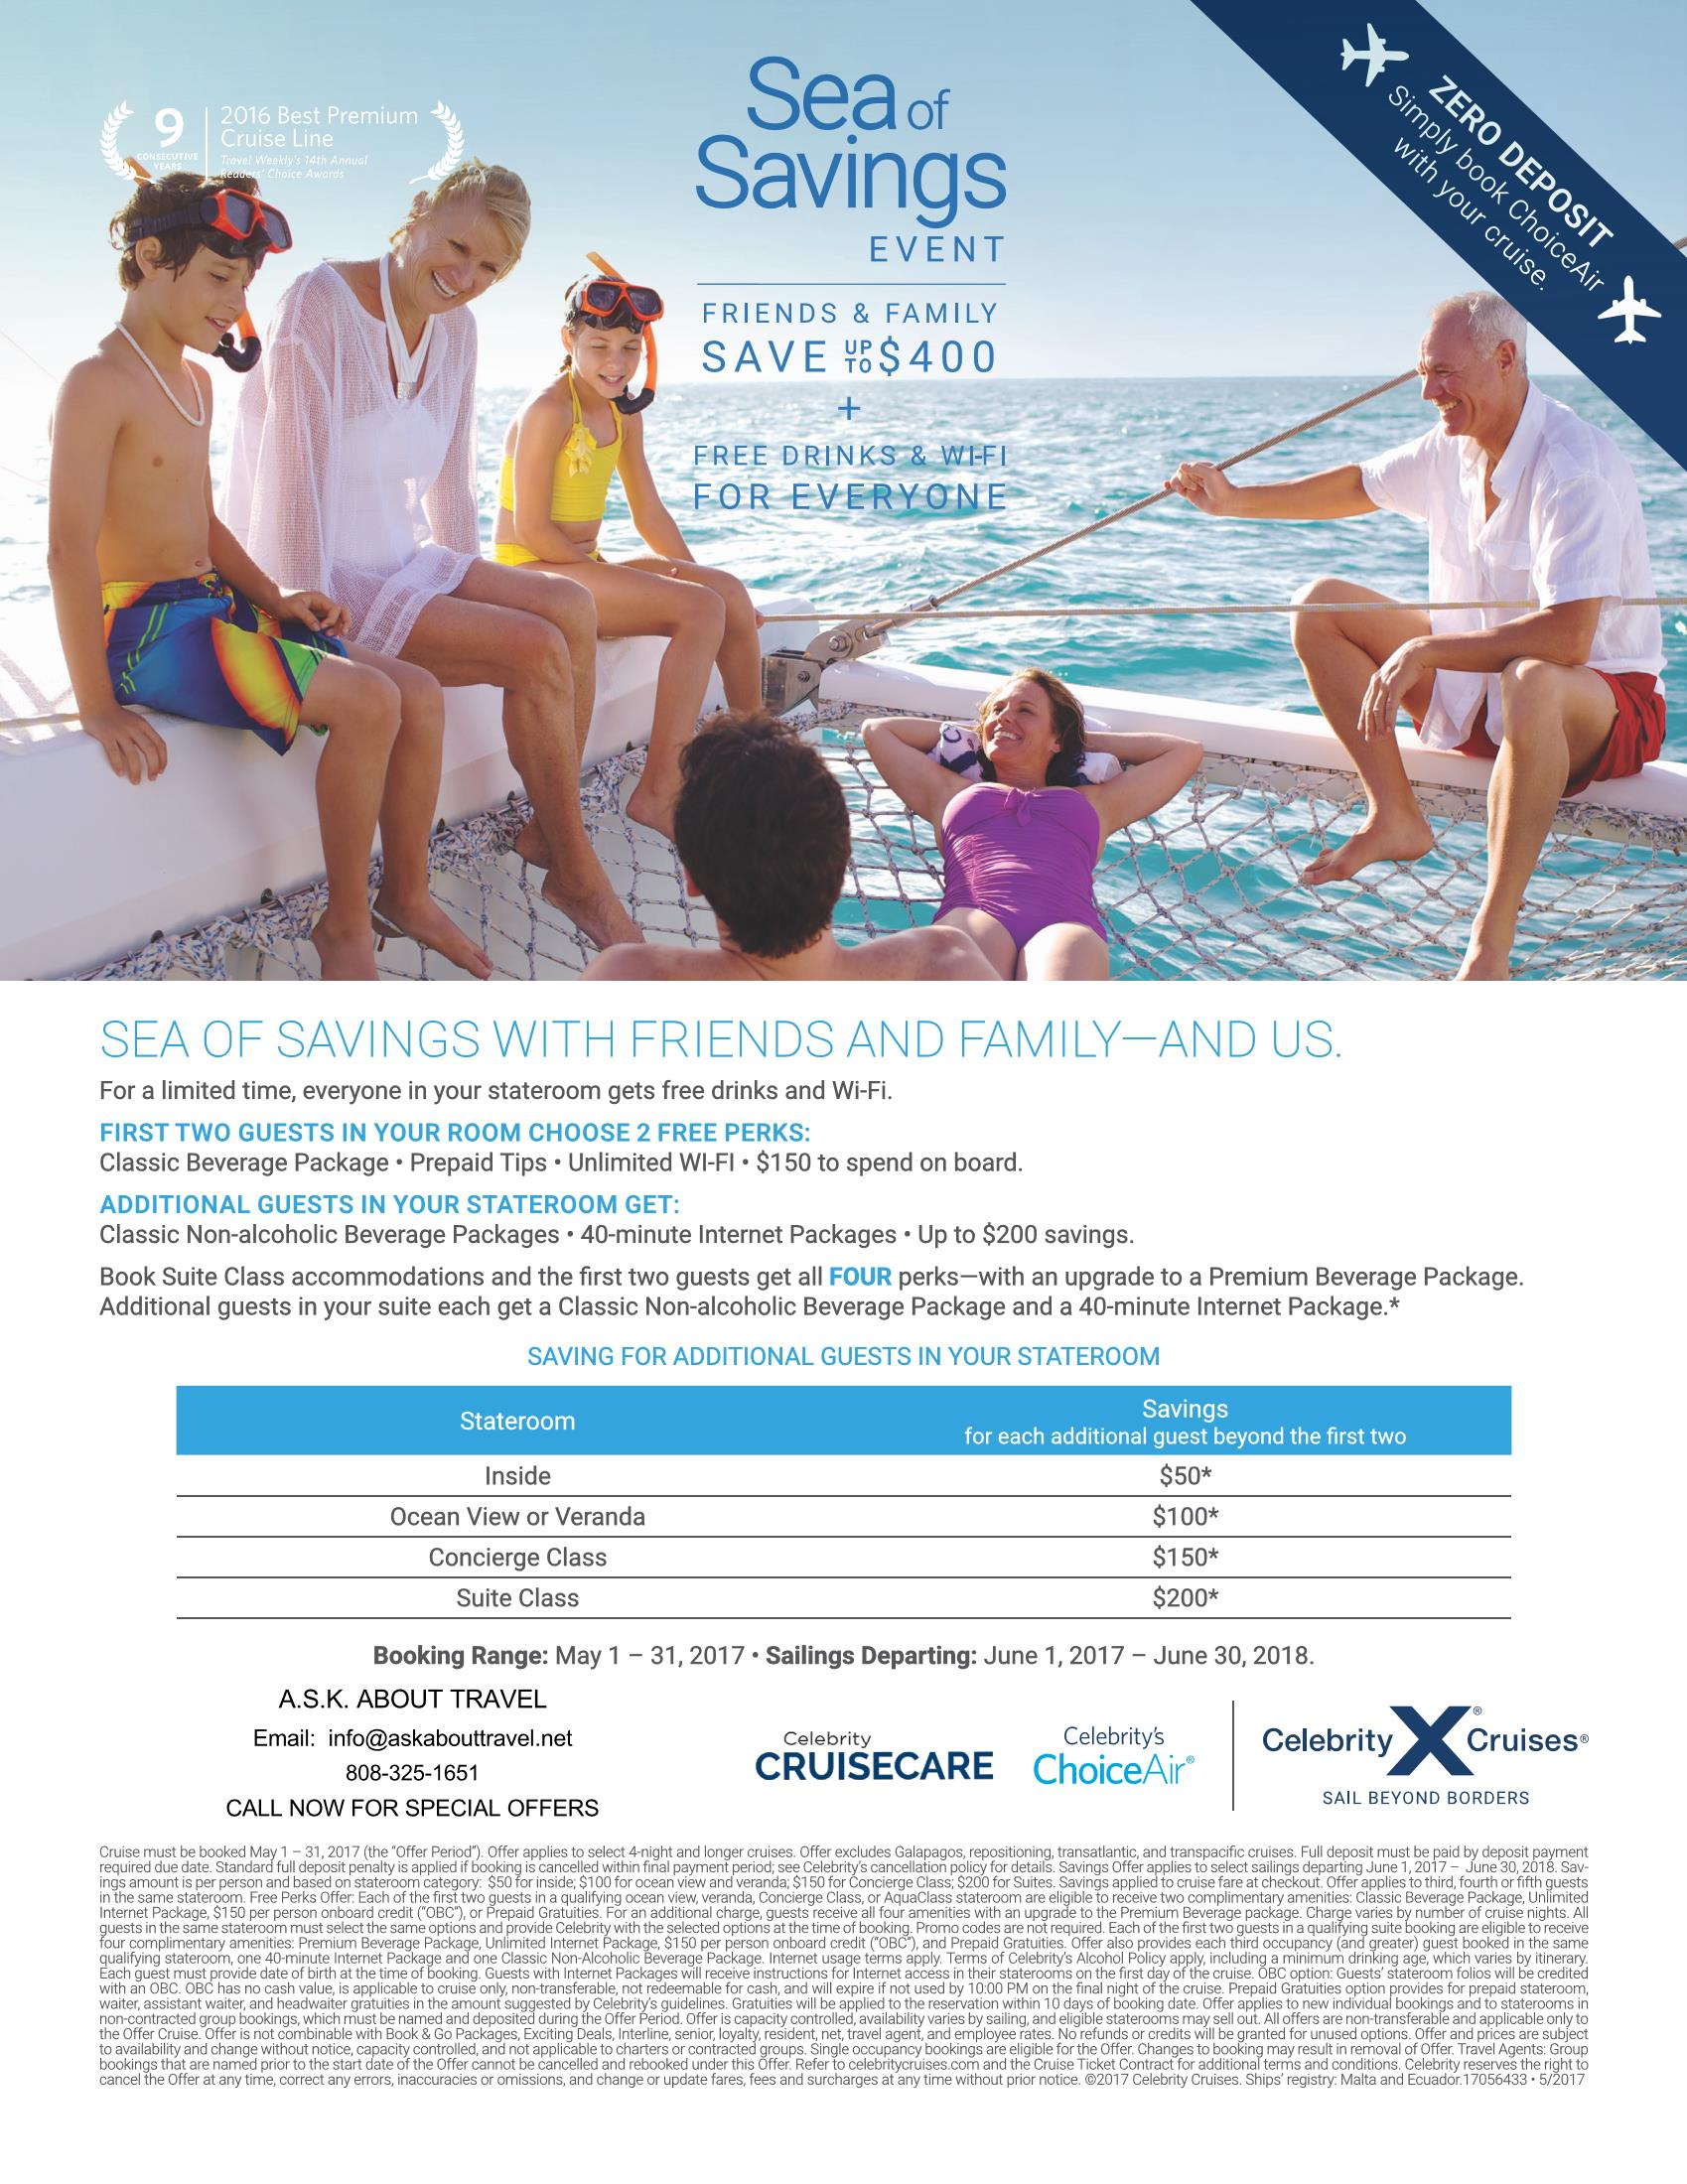 Celebrity May Offers--Custom Vacations